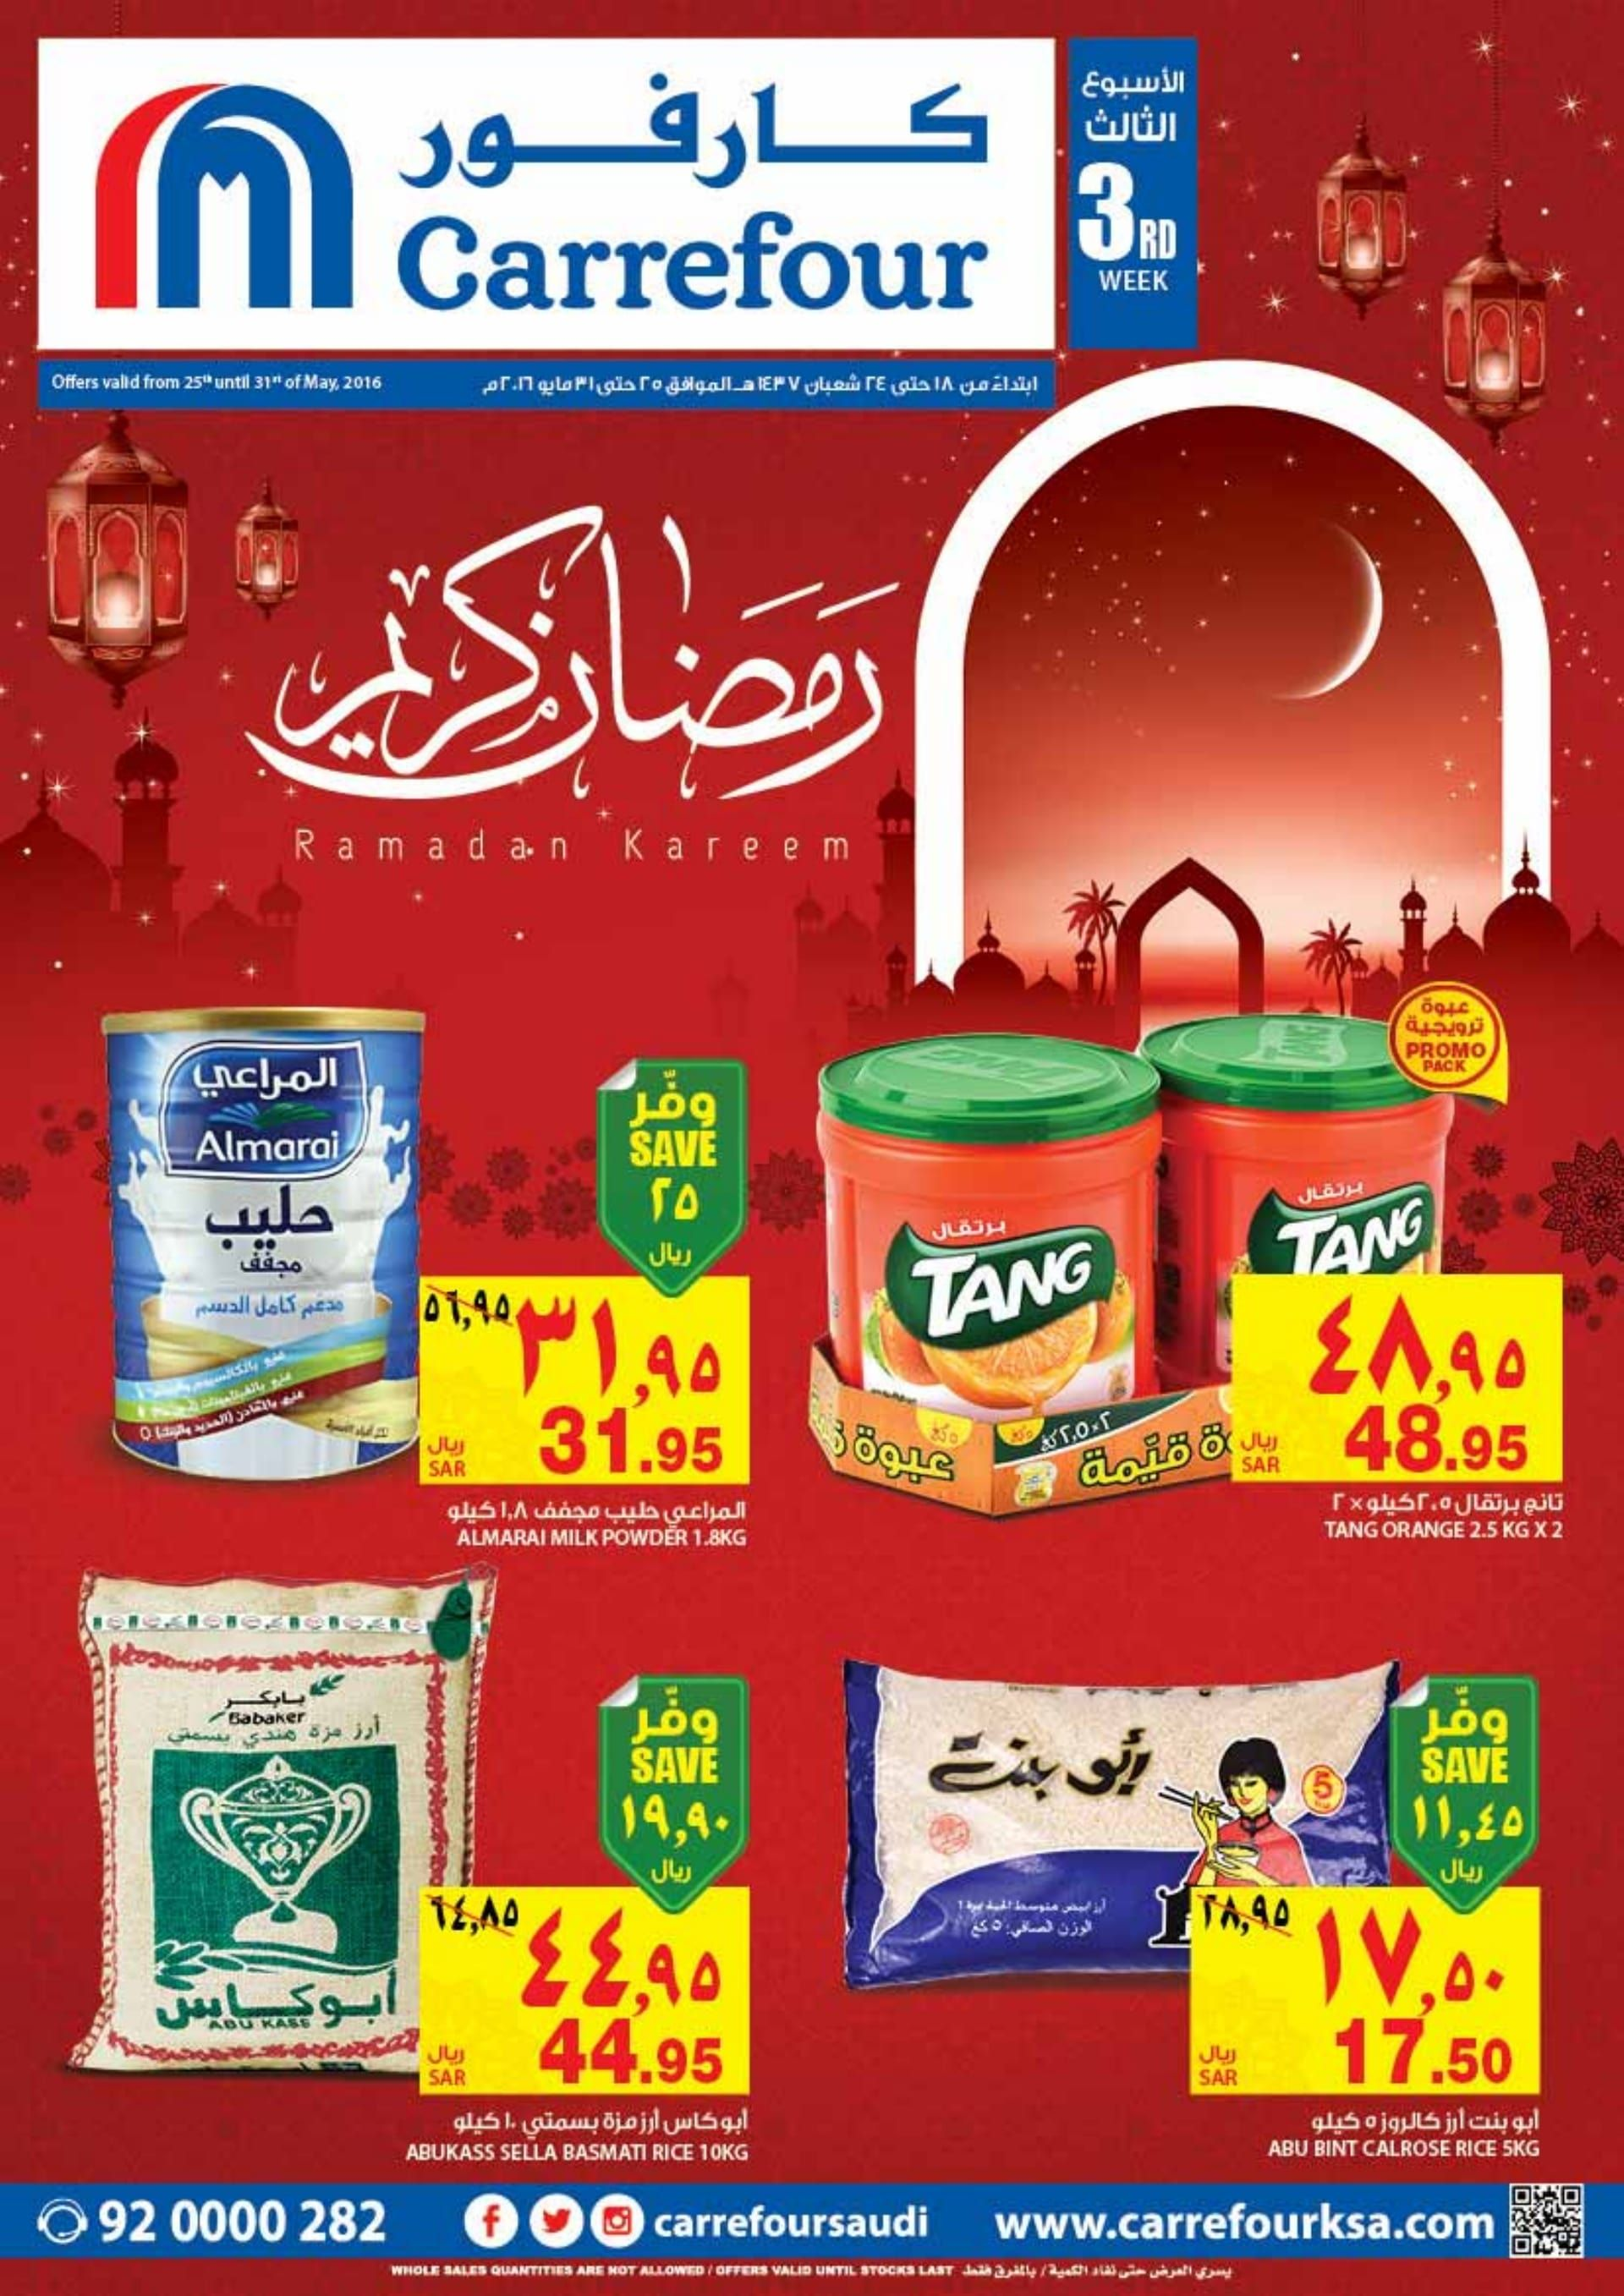 Carrefour Ramadan Offer Ksa 25th May 2016 To 31st May 2016 Uae Shopping Info Pops Cereal Box Cereal Pops Offer